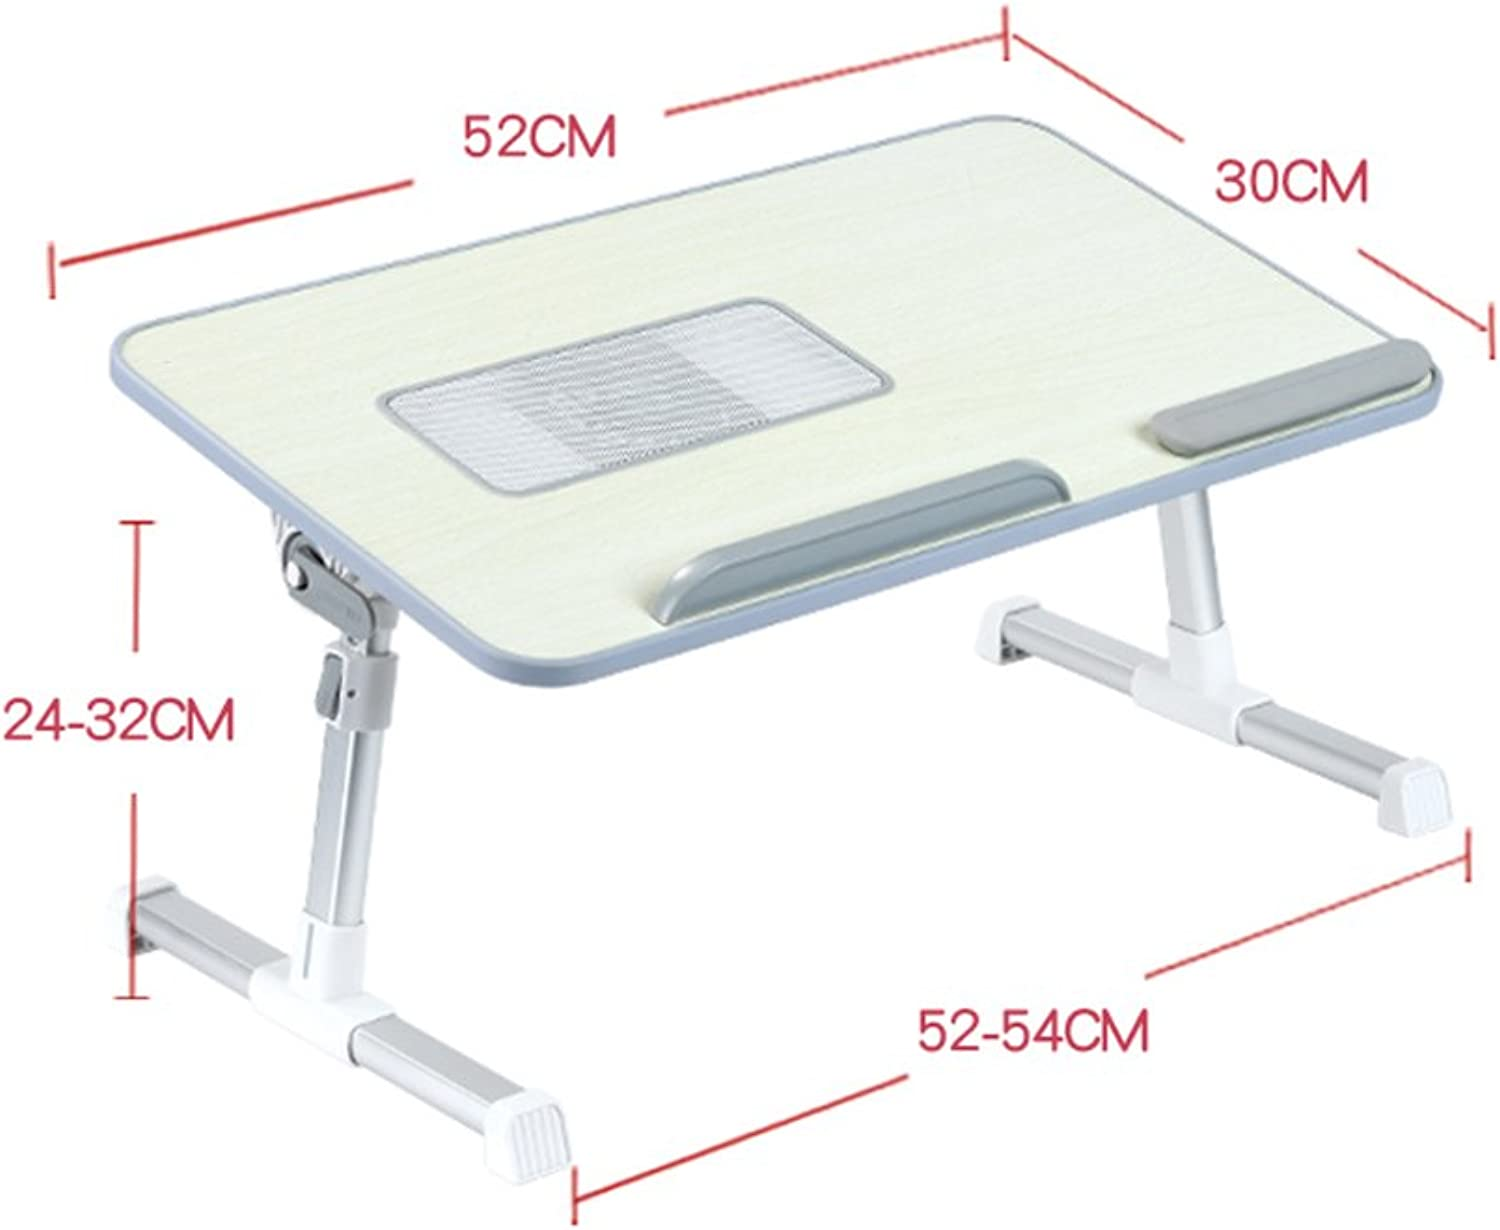 PENGFEI Portable Standing Table Lapdesks Multifunction Desk Bed Dining Table Picnic Collapsible Adjustable Height 2 Size 5 colors (color   E- Cooling Fan)